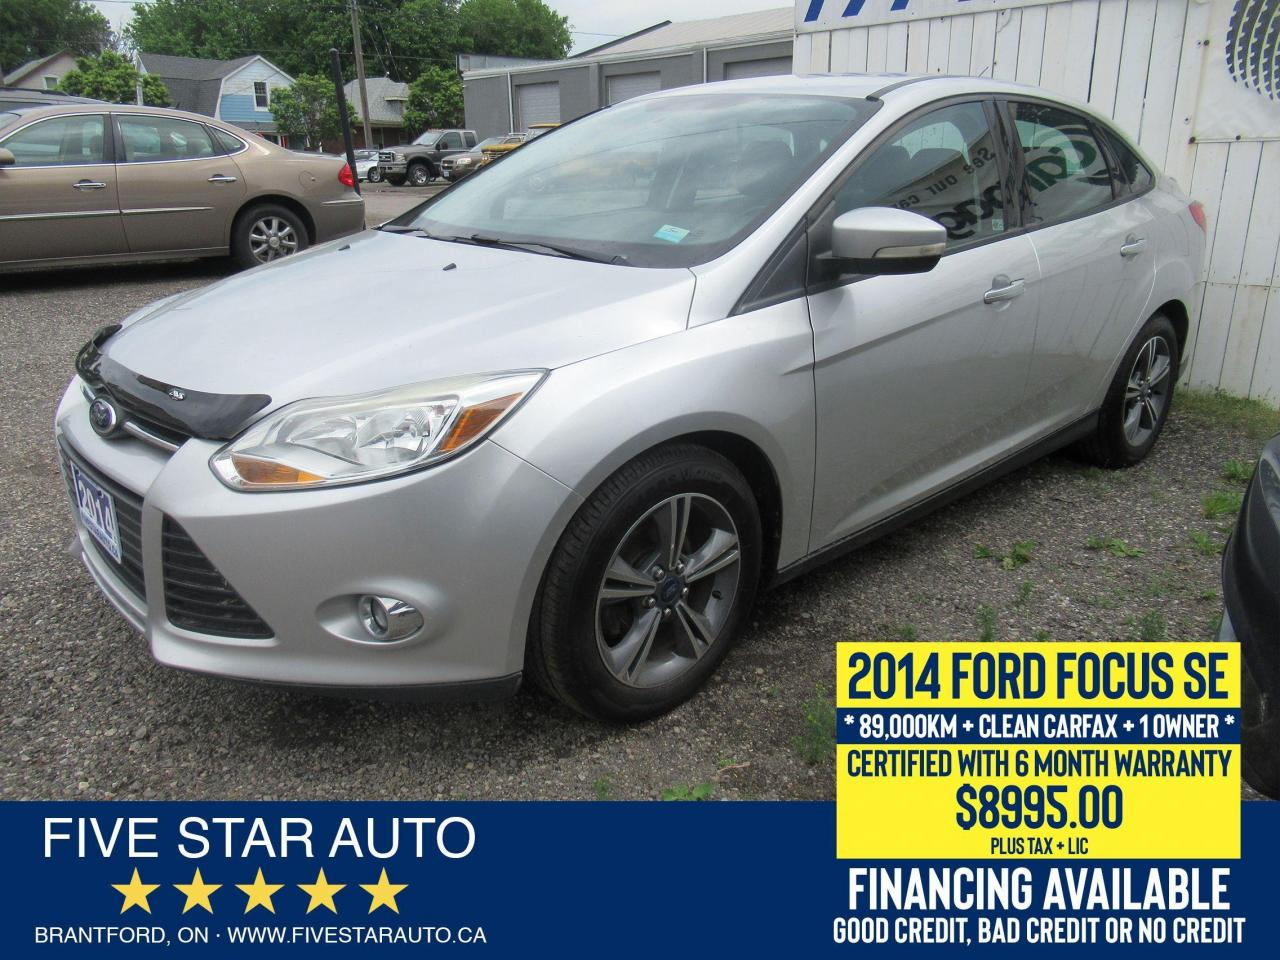 2014 Ford Focus SE *Clean Carfax* Certified w/ 6 Month Warranty